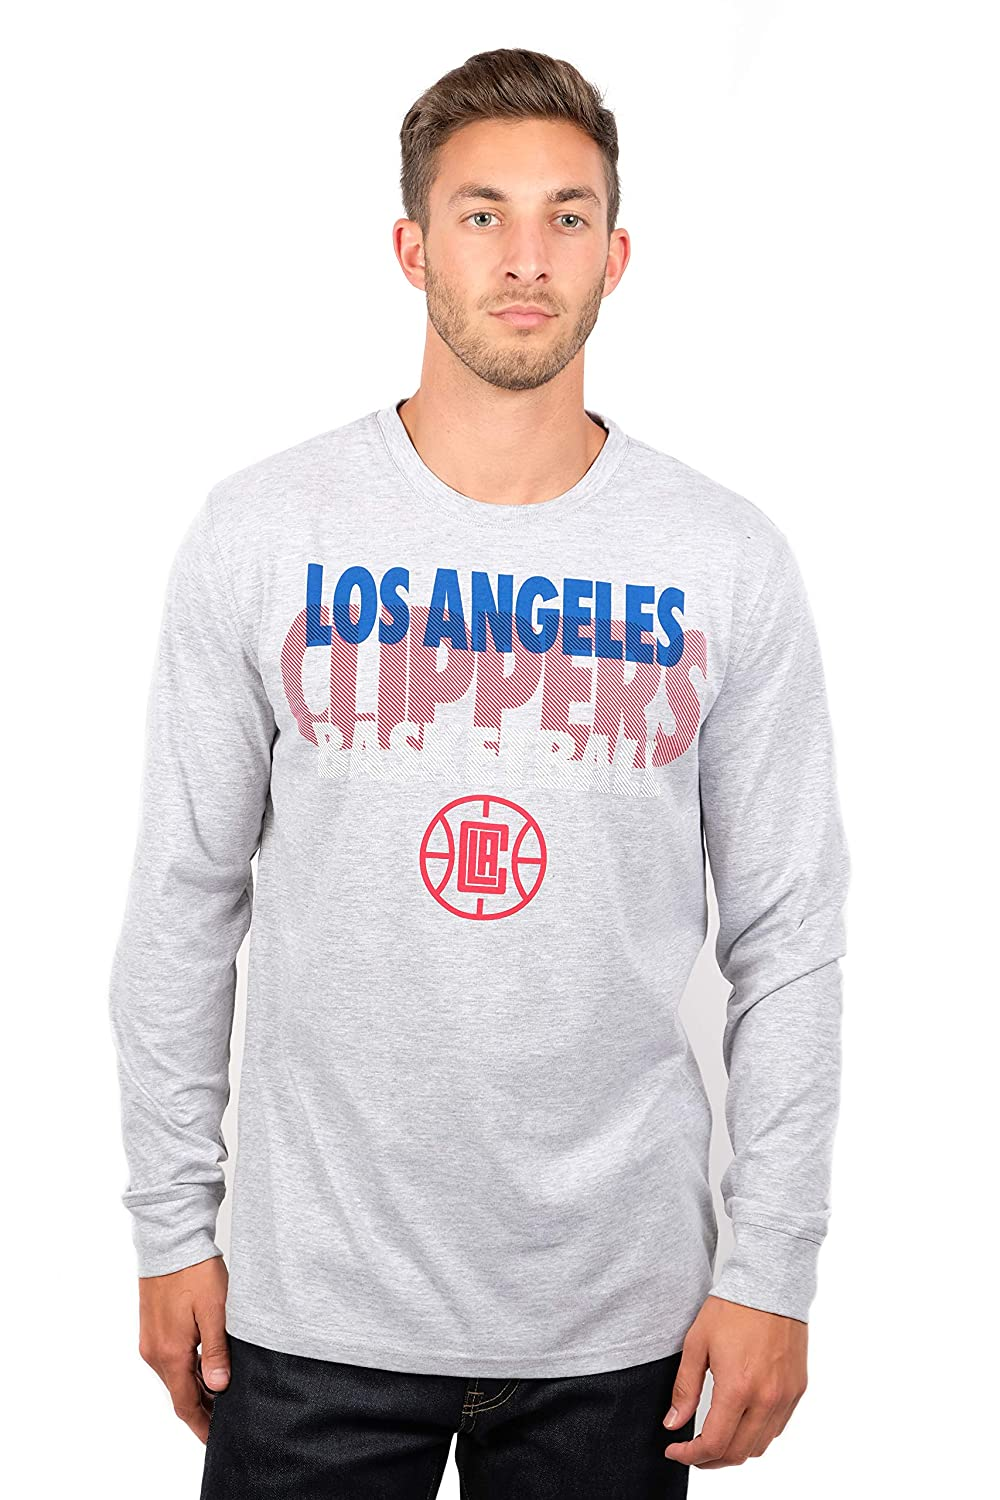 (Los Angeles Clippers, Small) - UNK NBA Men's T-Shirt Supreme Long Sleeve Pullover Tee Shirt, Grey   B01LXDRXET